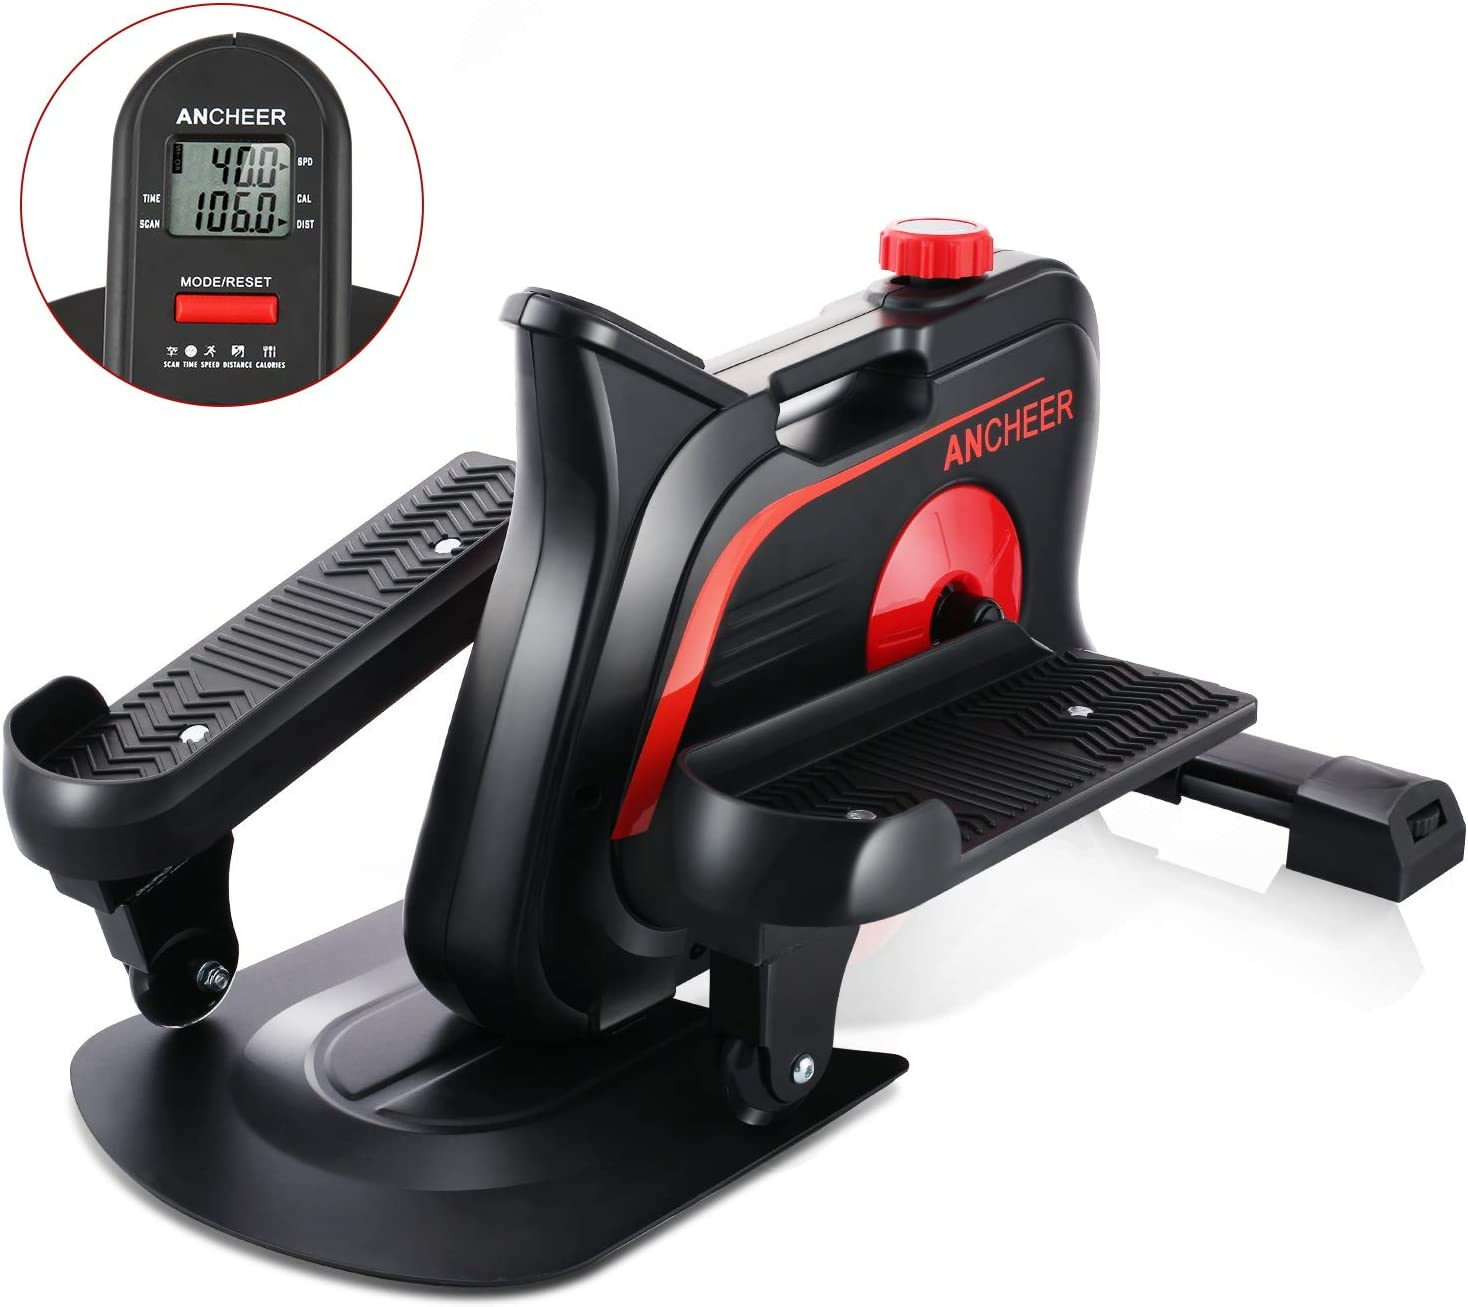 Fully Assembled Compact Strider with Adjustable Resistance /& Built-in Monitor for Home Office Cardio Training ANCHEER Mini Elliptical Machine Indoor Compact Fitness Under Desk//Stand Up Elliptical